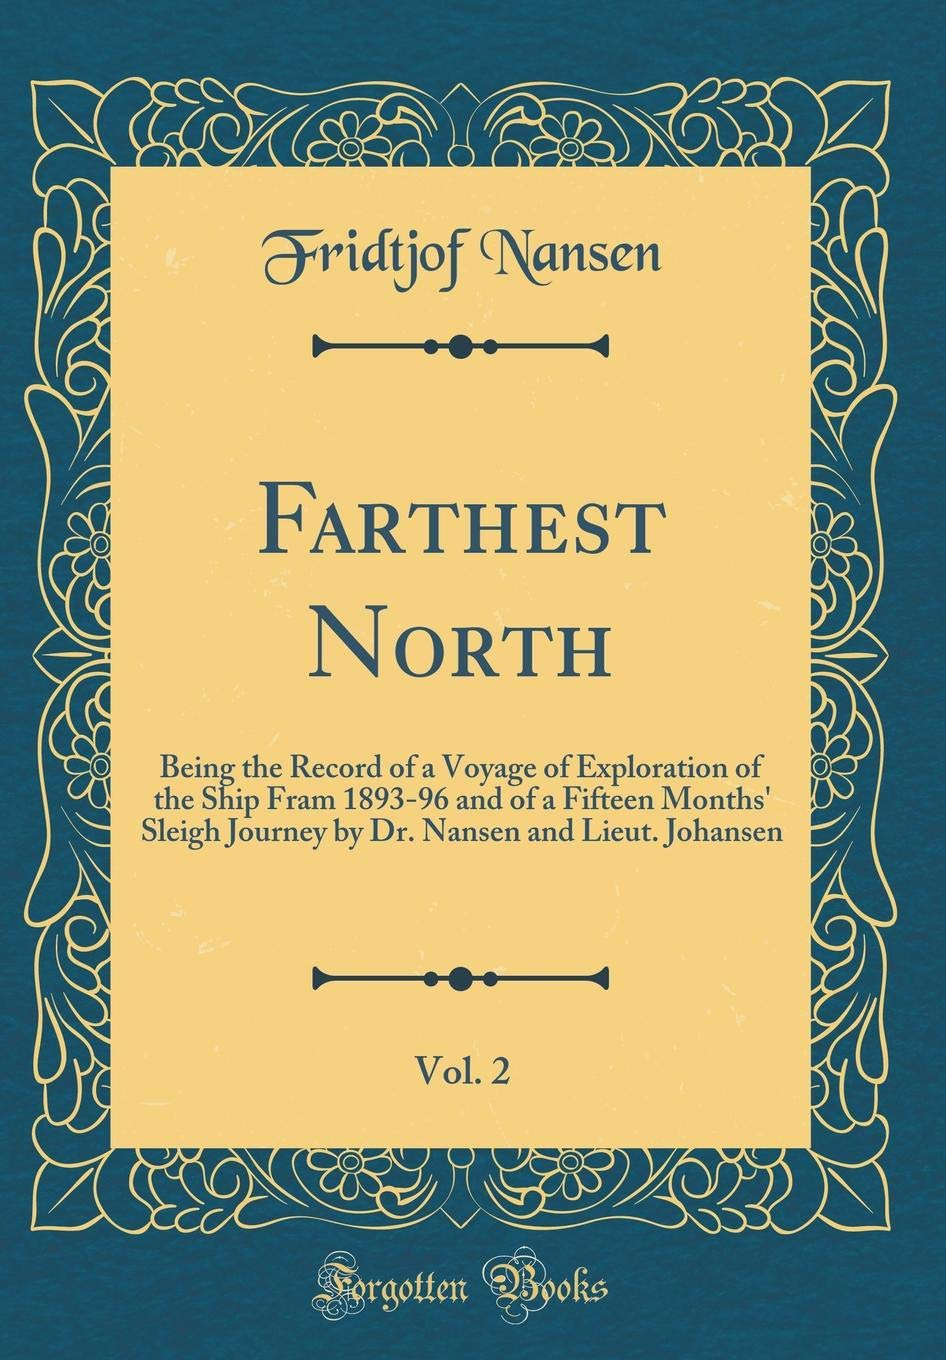 Download Farthest North, Vol. 2: Being the Record of a Voyage of Exploration of the Ship Fram 1893-96 and of a Fifteen Months' Sleigh Journey by Dr. Nansen and Lieut. Johansen (Classic Reprint) pdf